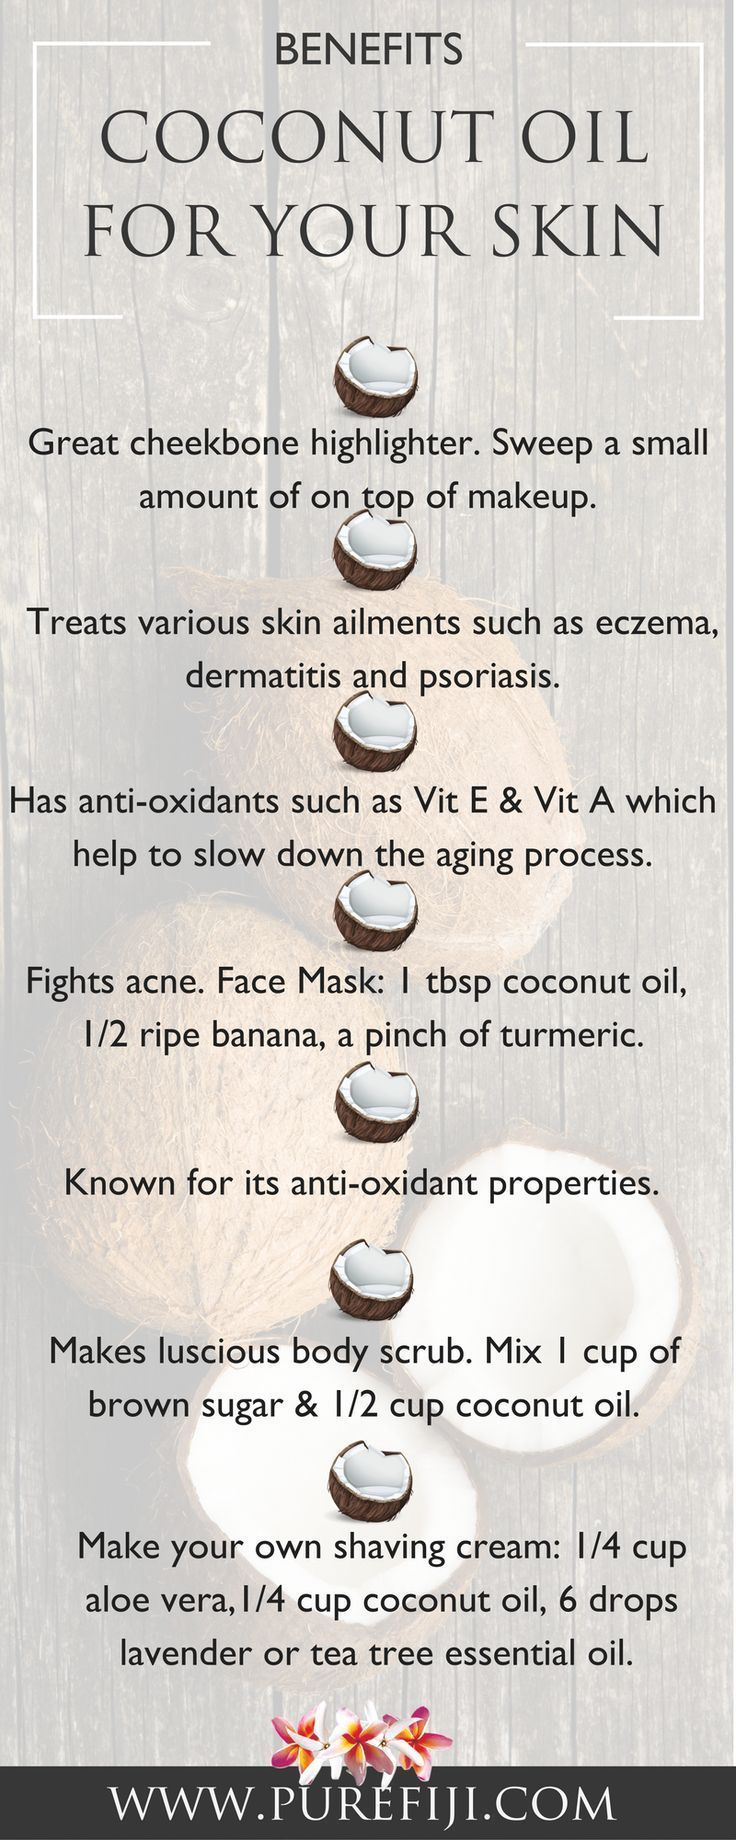 Find here how to use coconut oil for beautiful glowing skin and shiny hair. Get